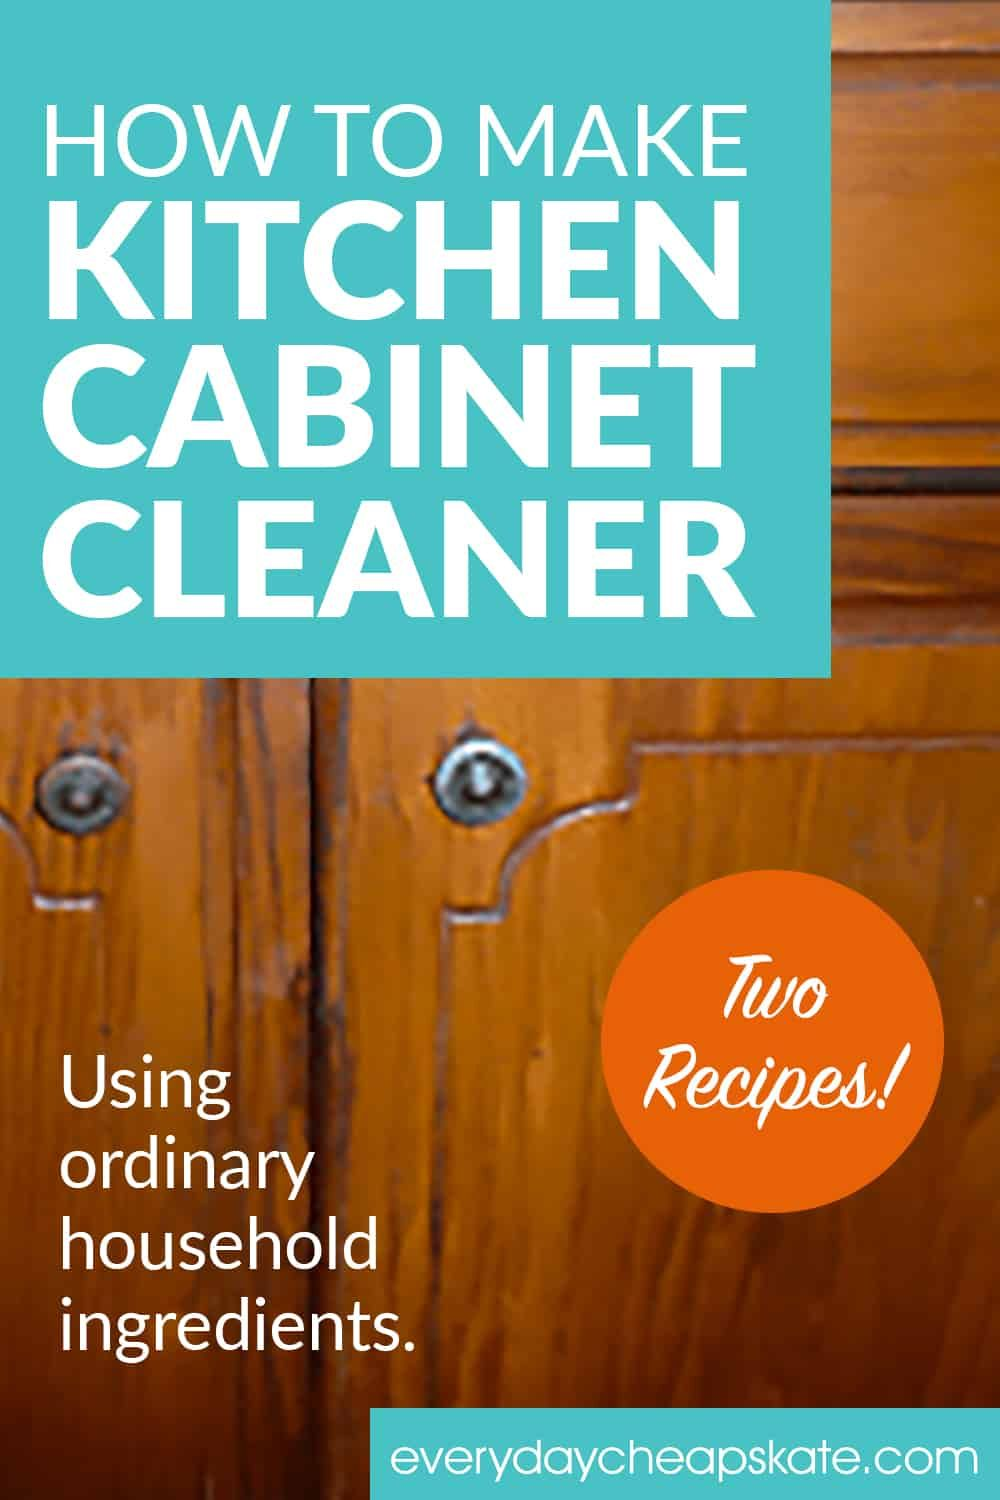 If You Are Looking For A Commercial Product To Clean Kitchen Cabinets You Ll Never Beat The Effective Cabinet Cleaner Cleaning Cabinets Clean Kitchen Cabinets